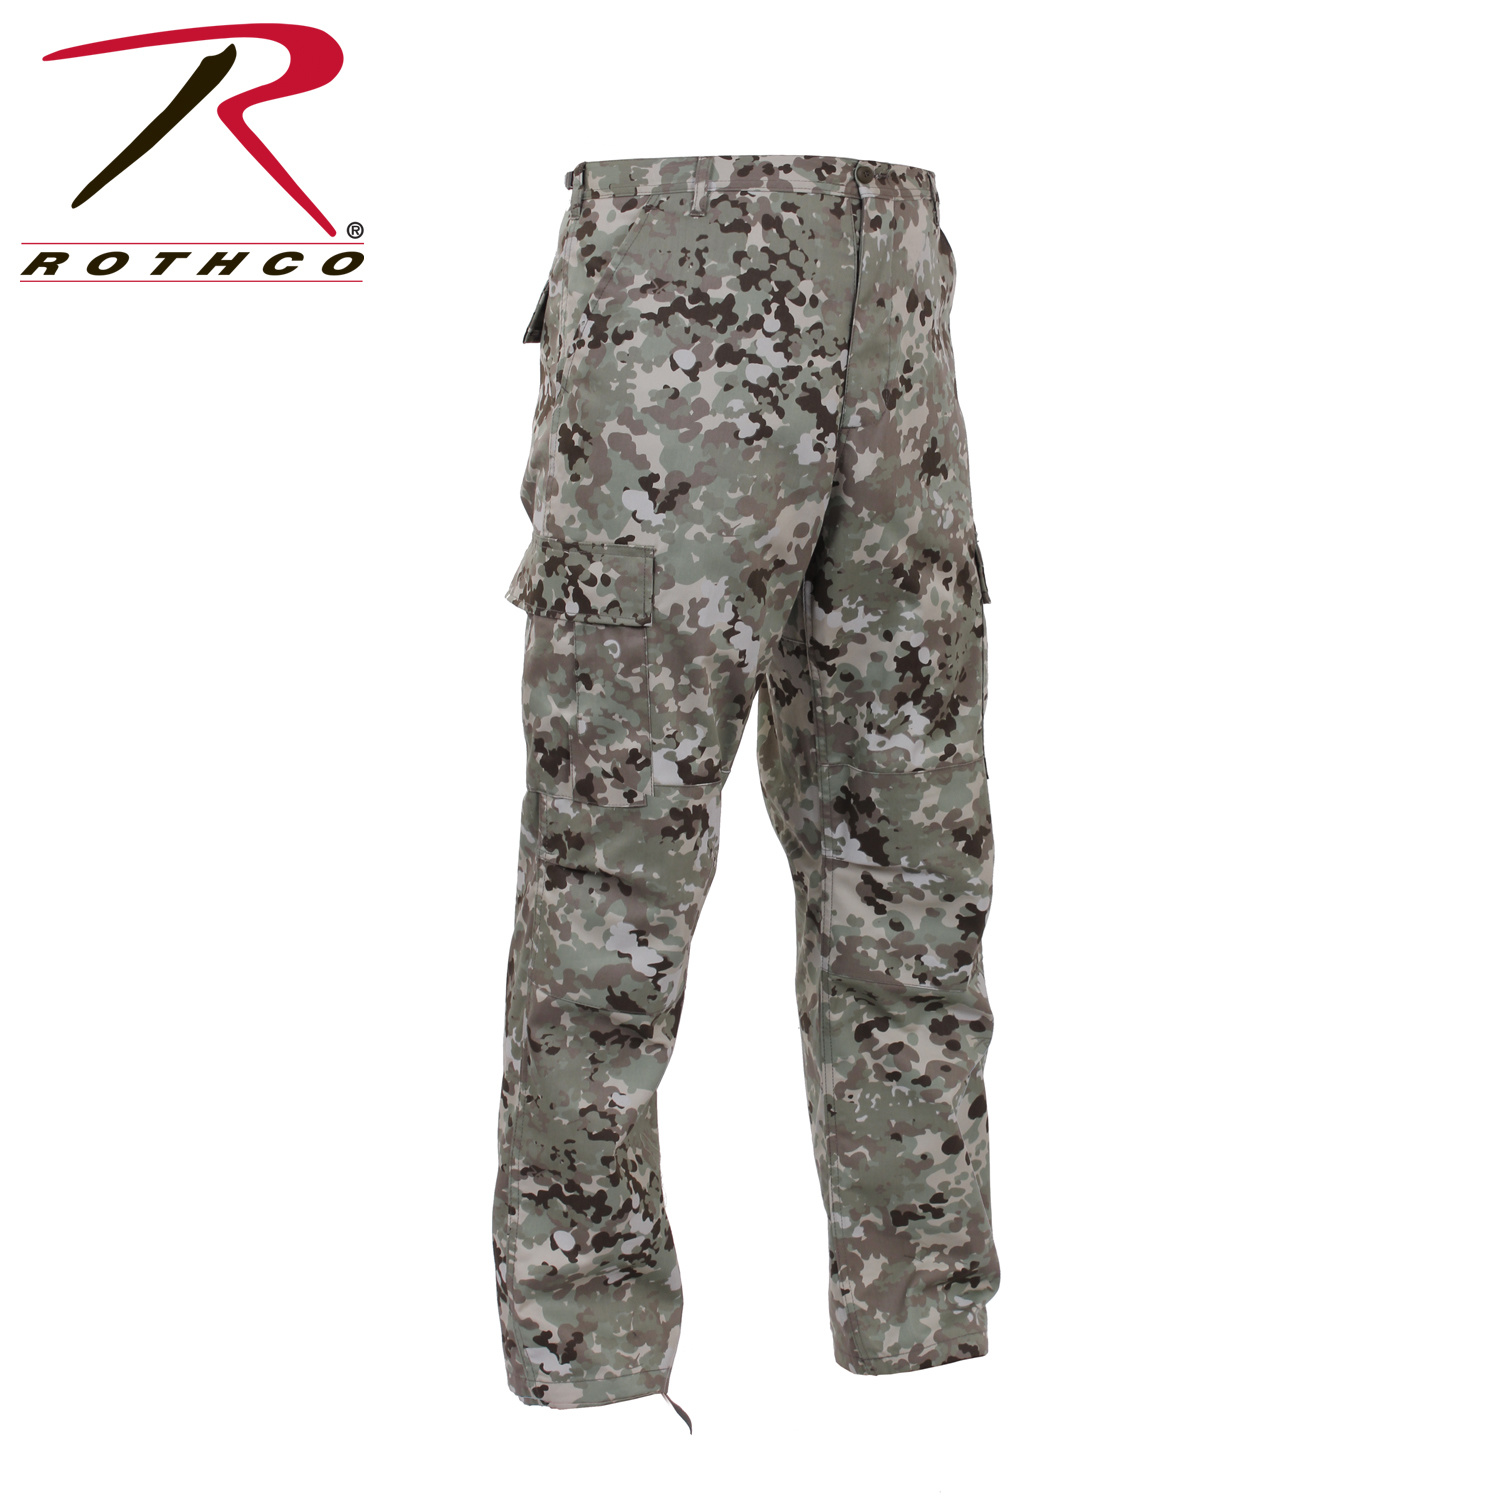 Rothco Tactical BDU Pants Total Terrain Camo